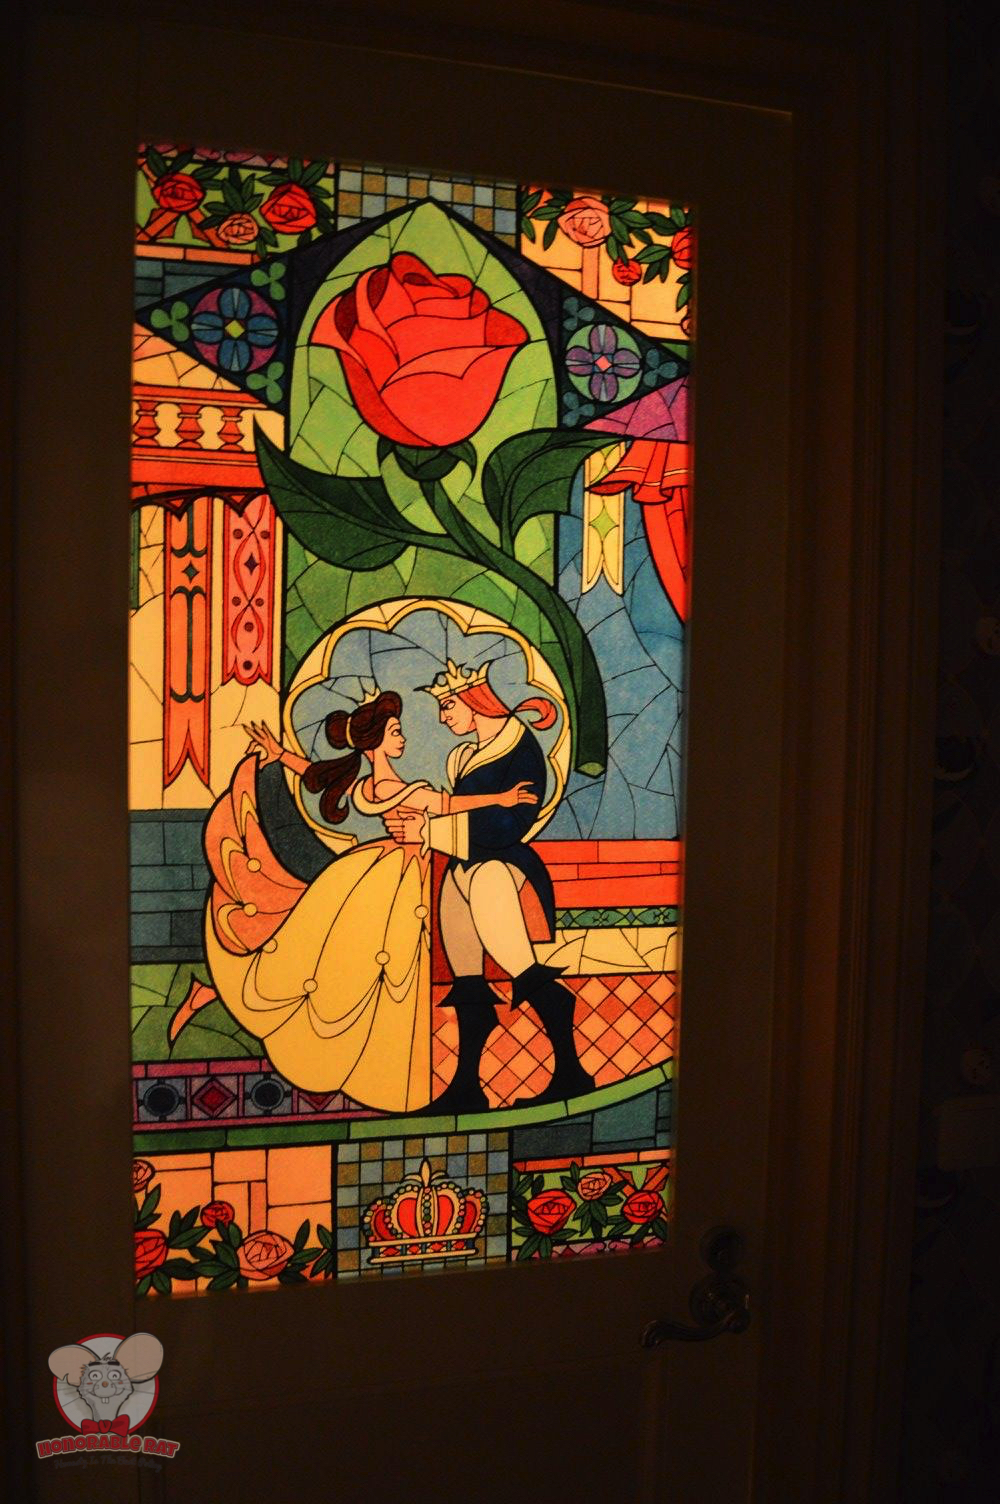 Closer look at the stained glass on the toilet door